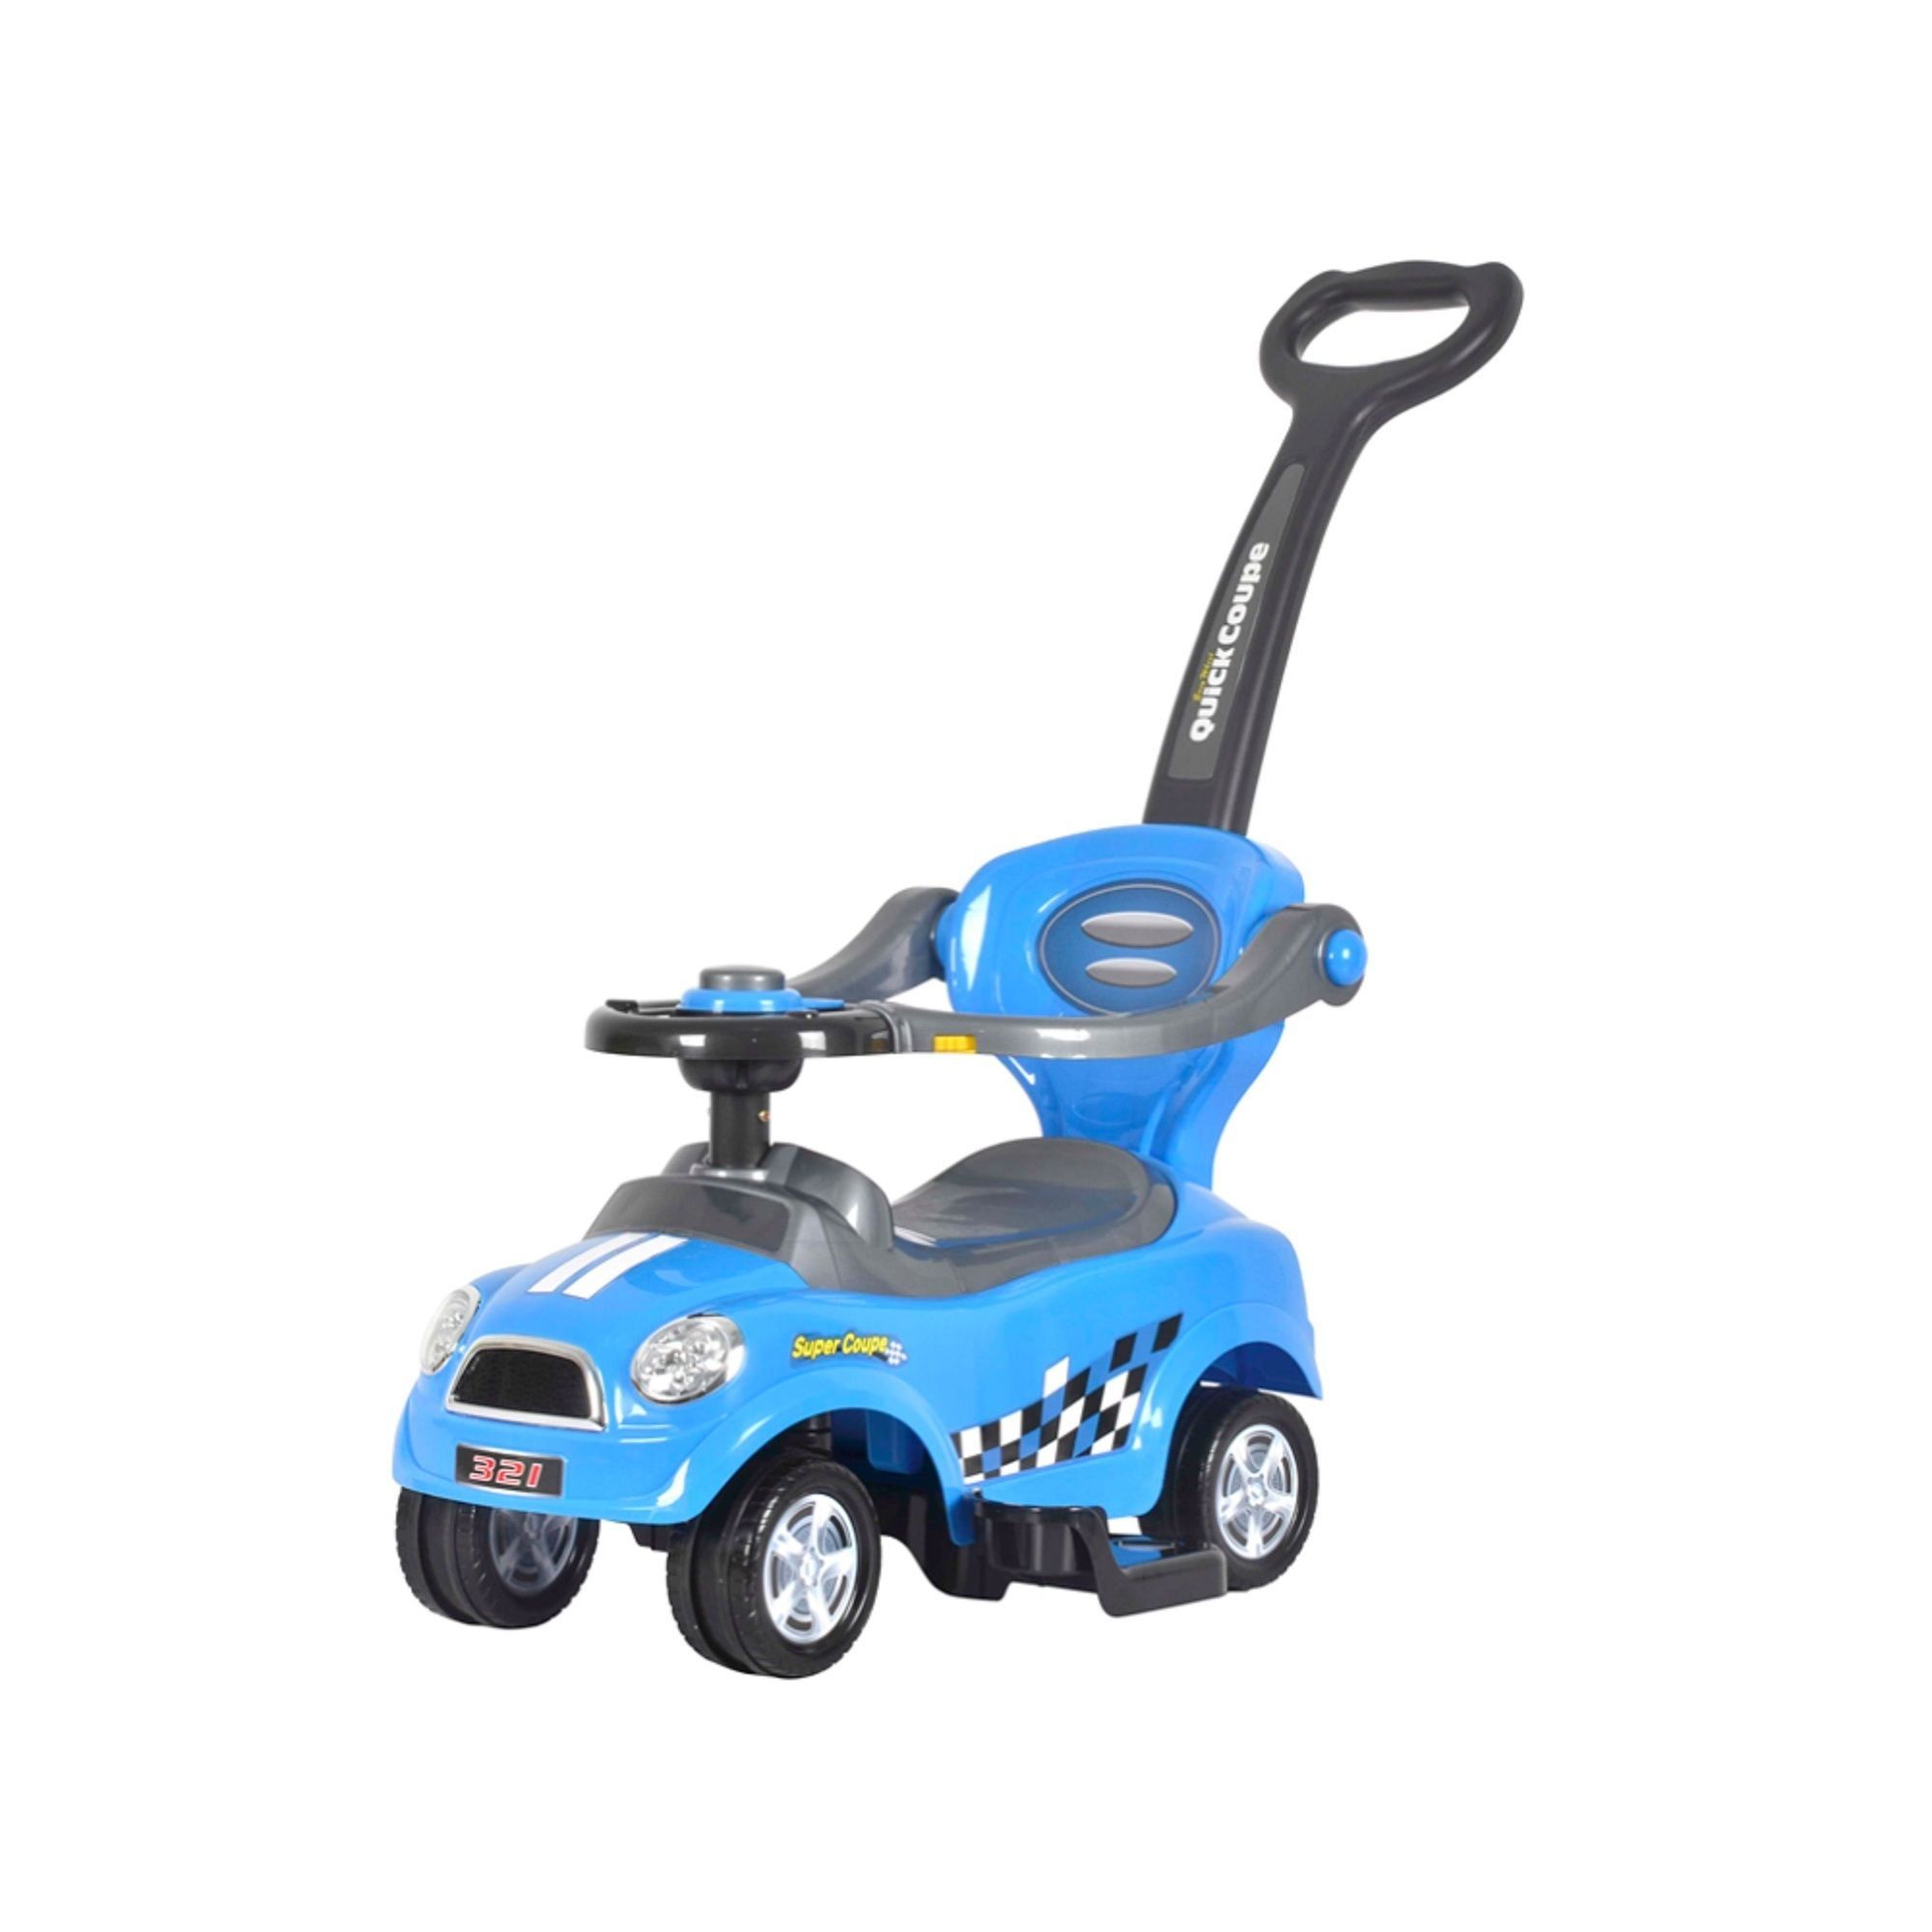 Toys car boys  Best Ride On Cars Mini  in  Push Car Blue by Best Ride On Cars